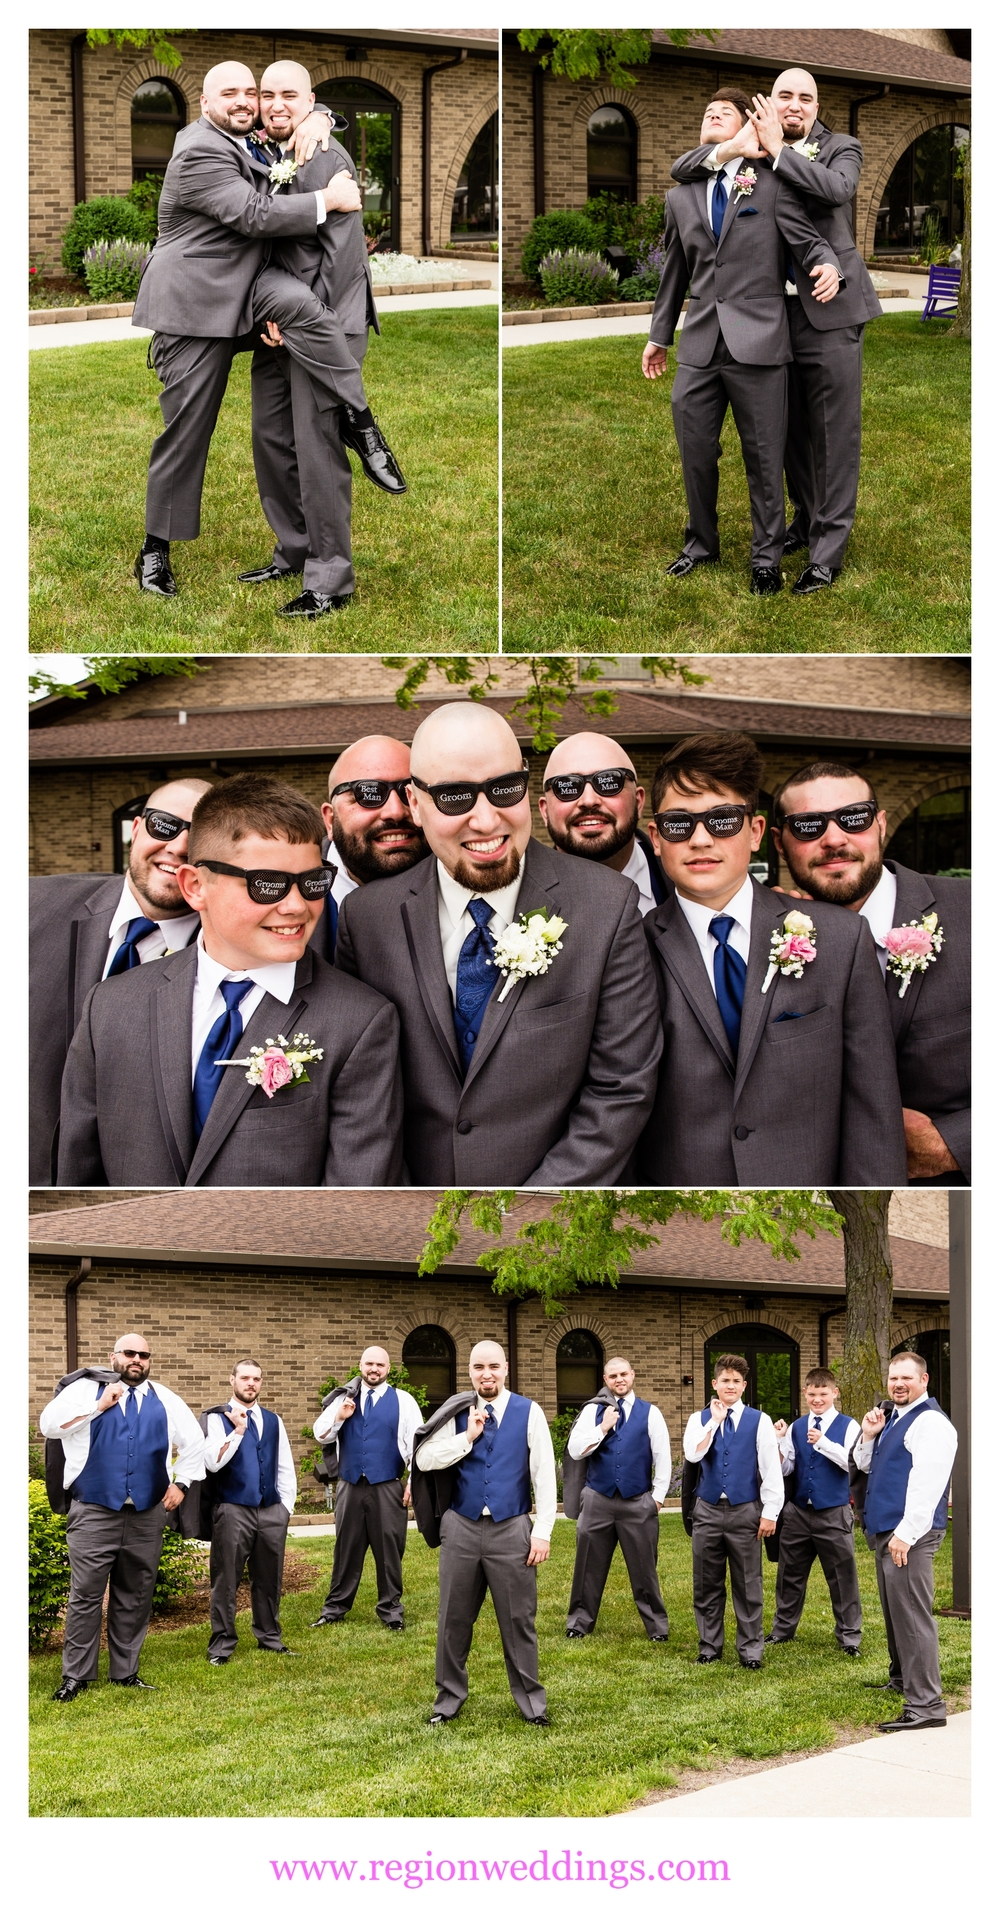 Fun groomsmen photos before the ceremony.